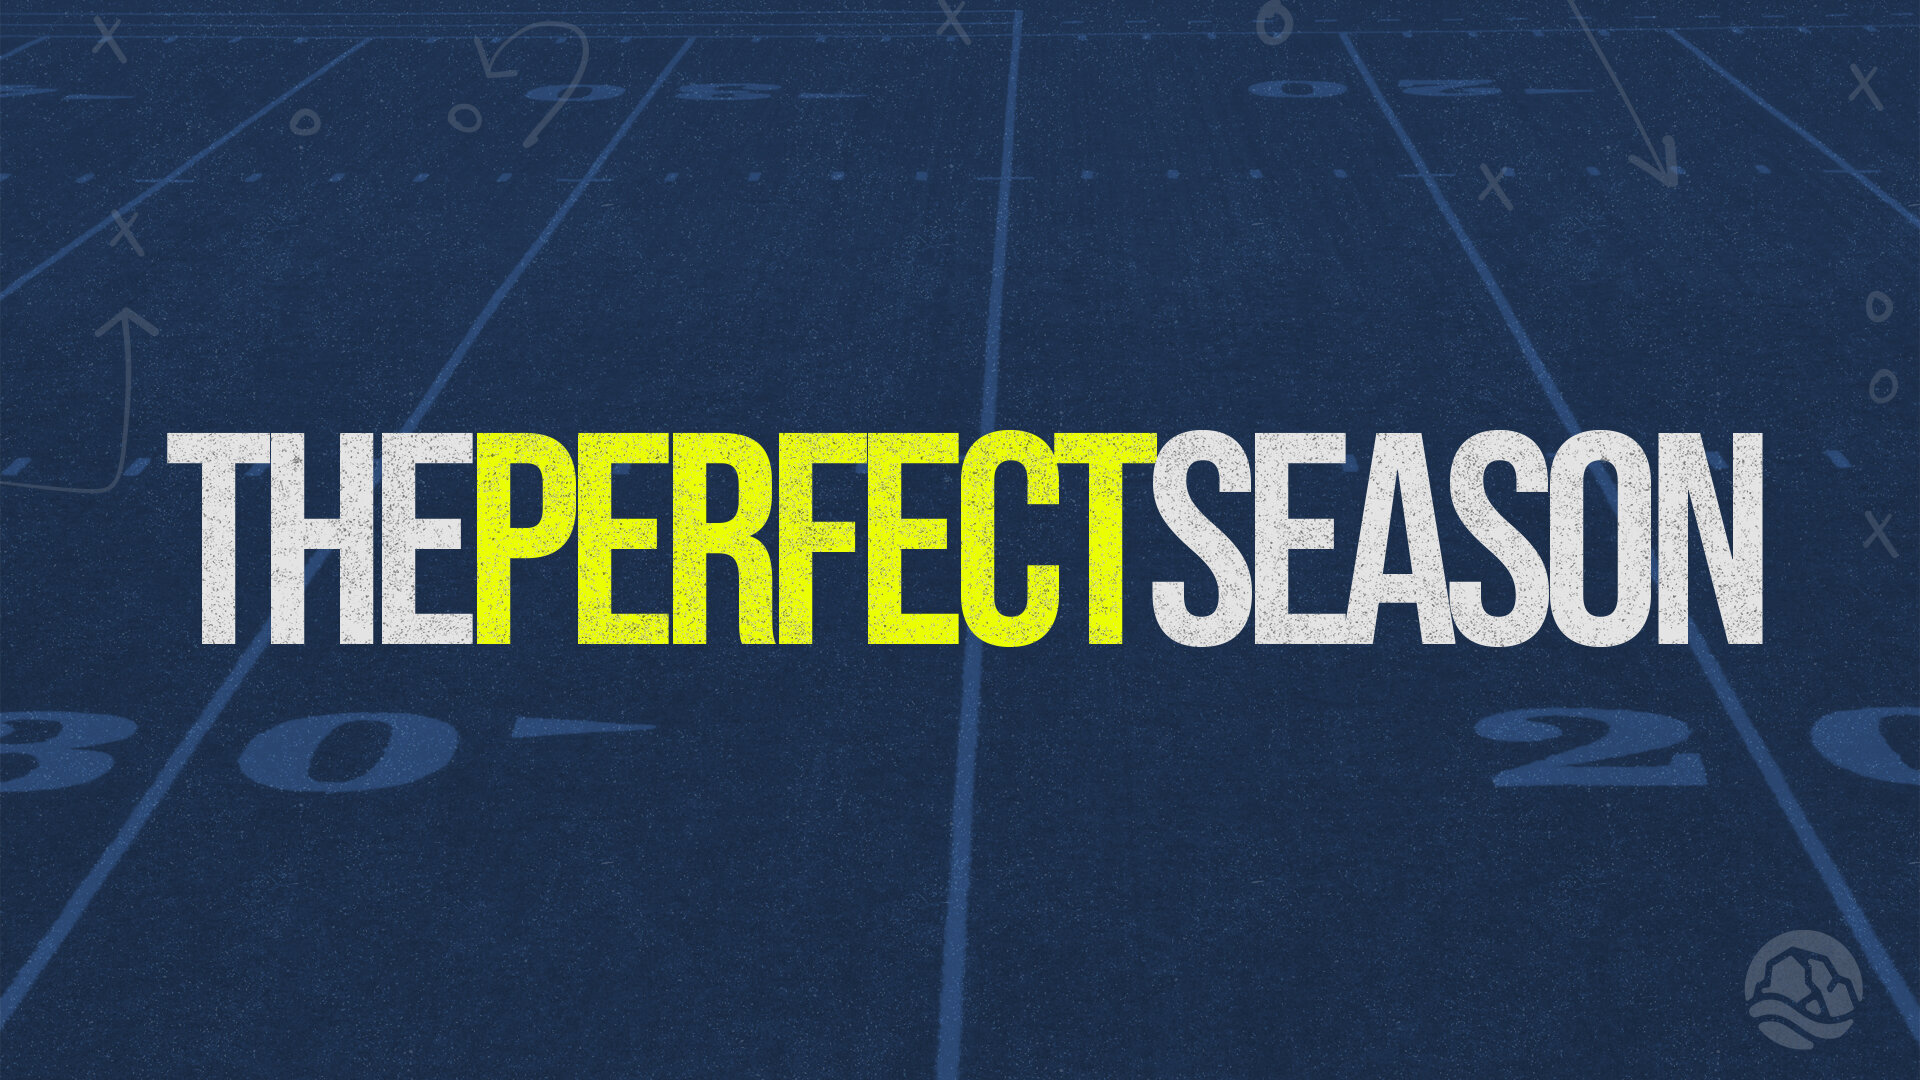 The Perfect Season_Title Slide.jpg